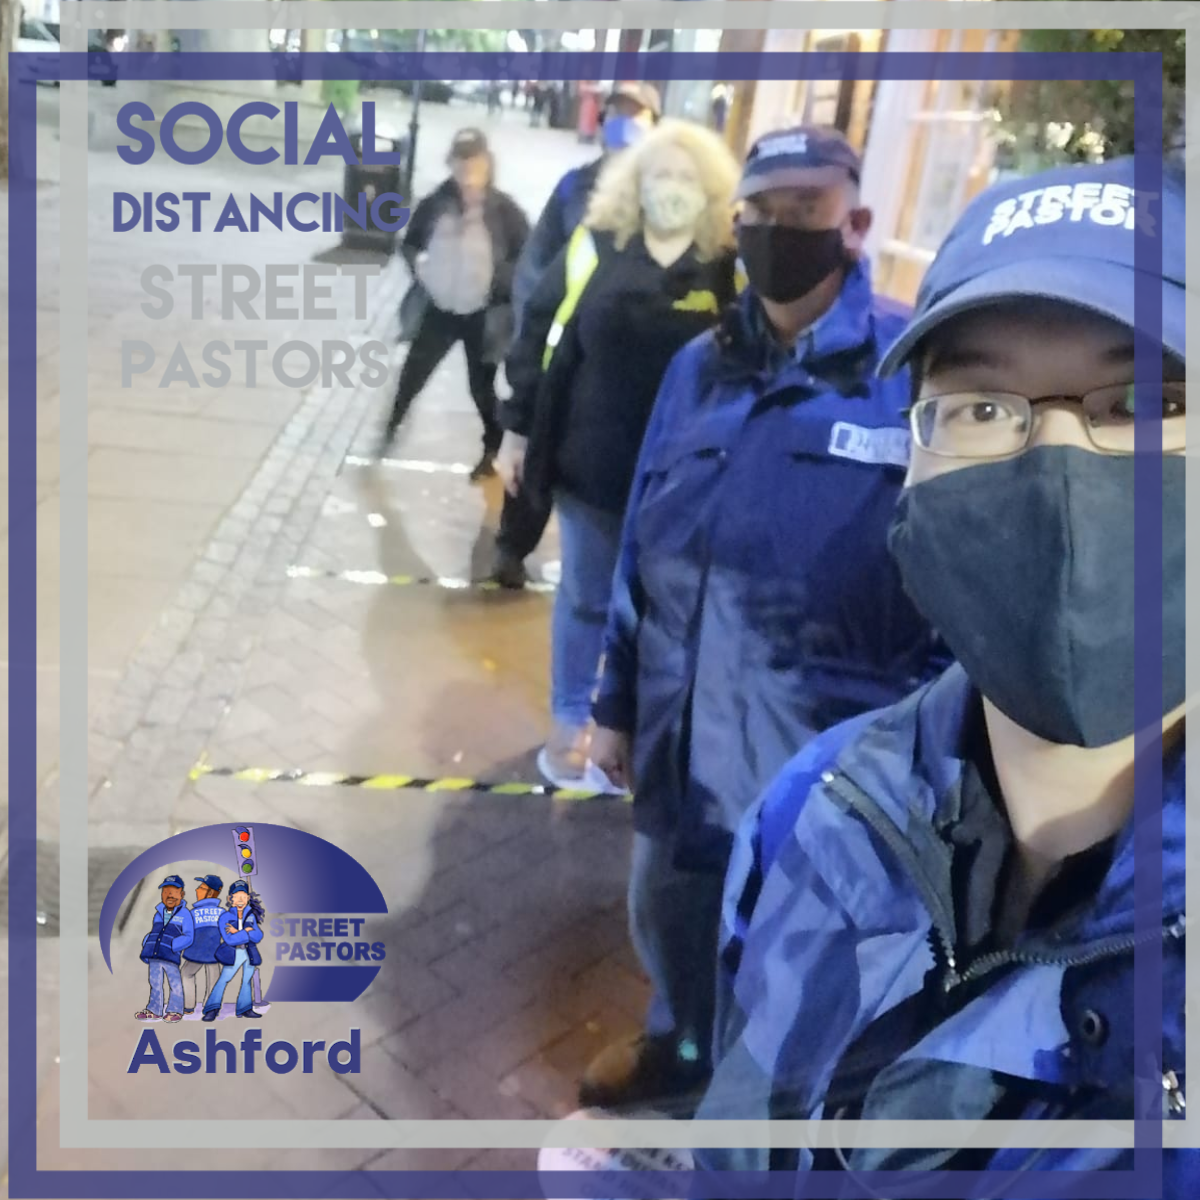 picture of socially distanced street pastors patrolling